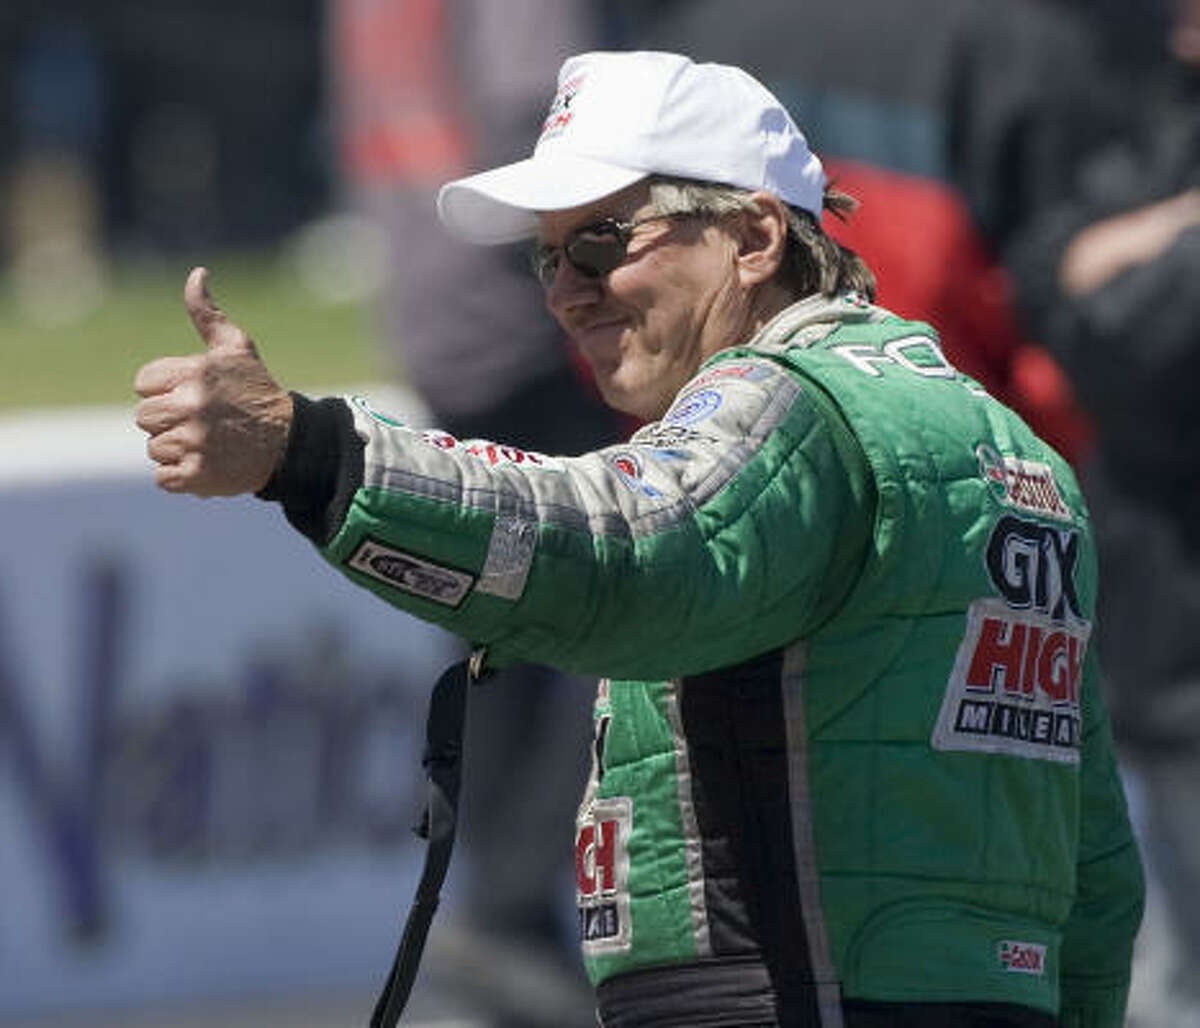 Funny Car driver John Force gives a thumbs up.